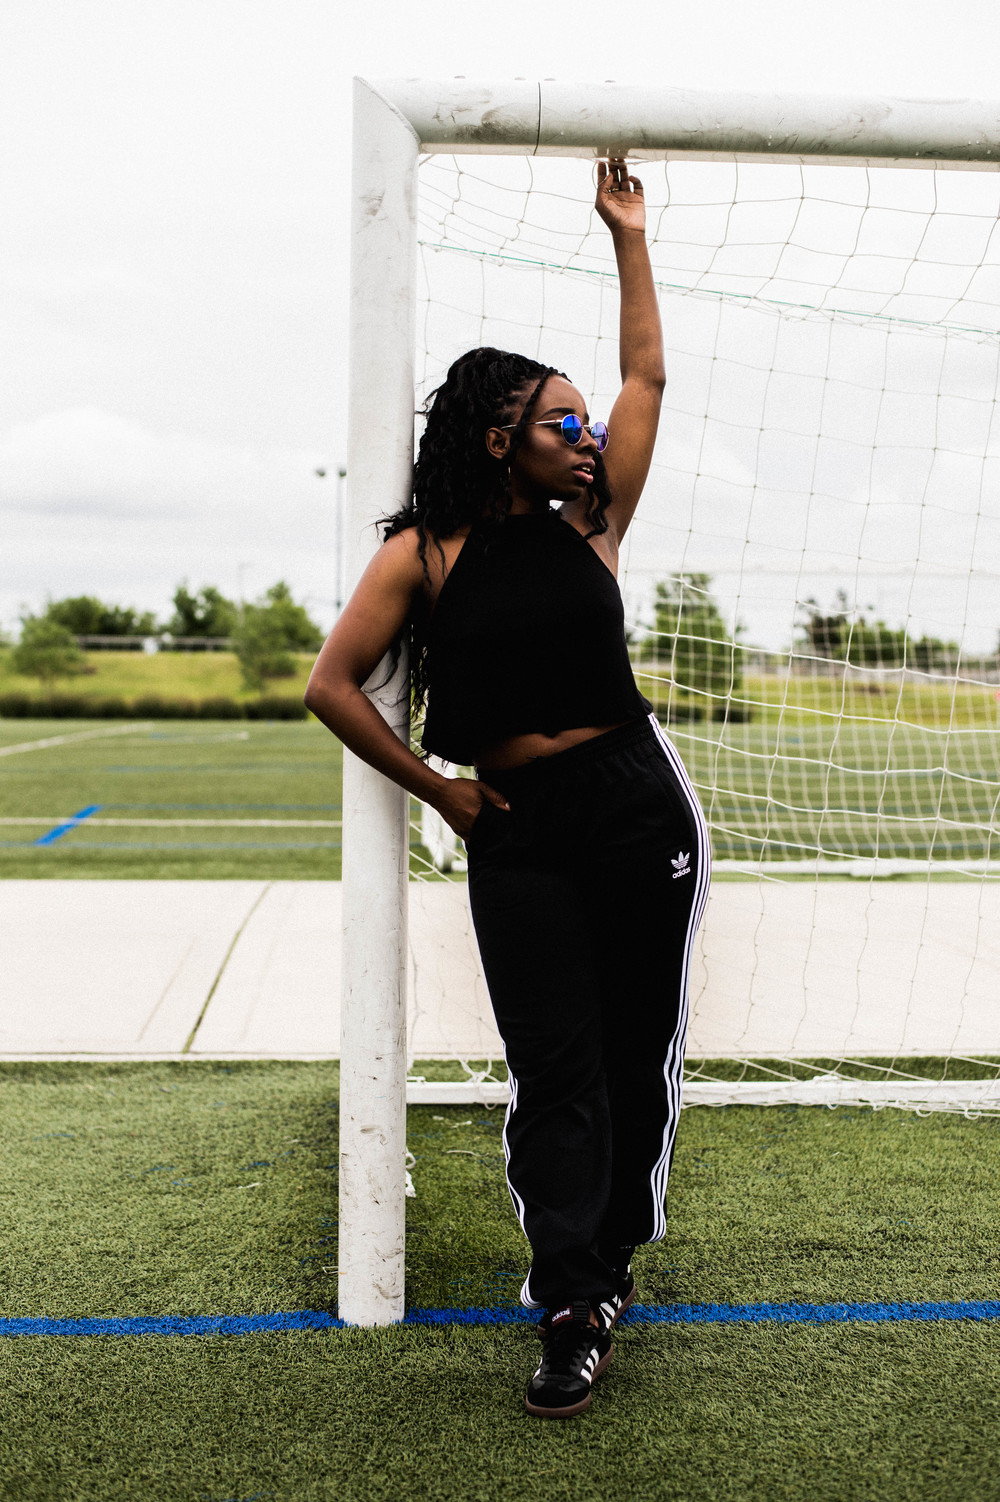 The_Glossier_Tasha_James_Blogger_style_fashion_Adidas_Soccer_futbol_Samba_Editorial_Summer_2016-32.jpg